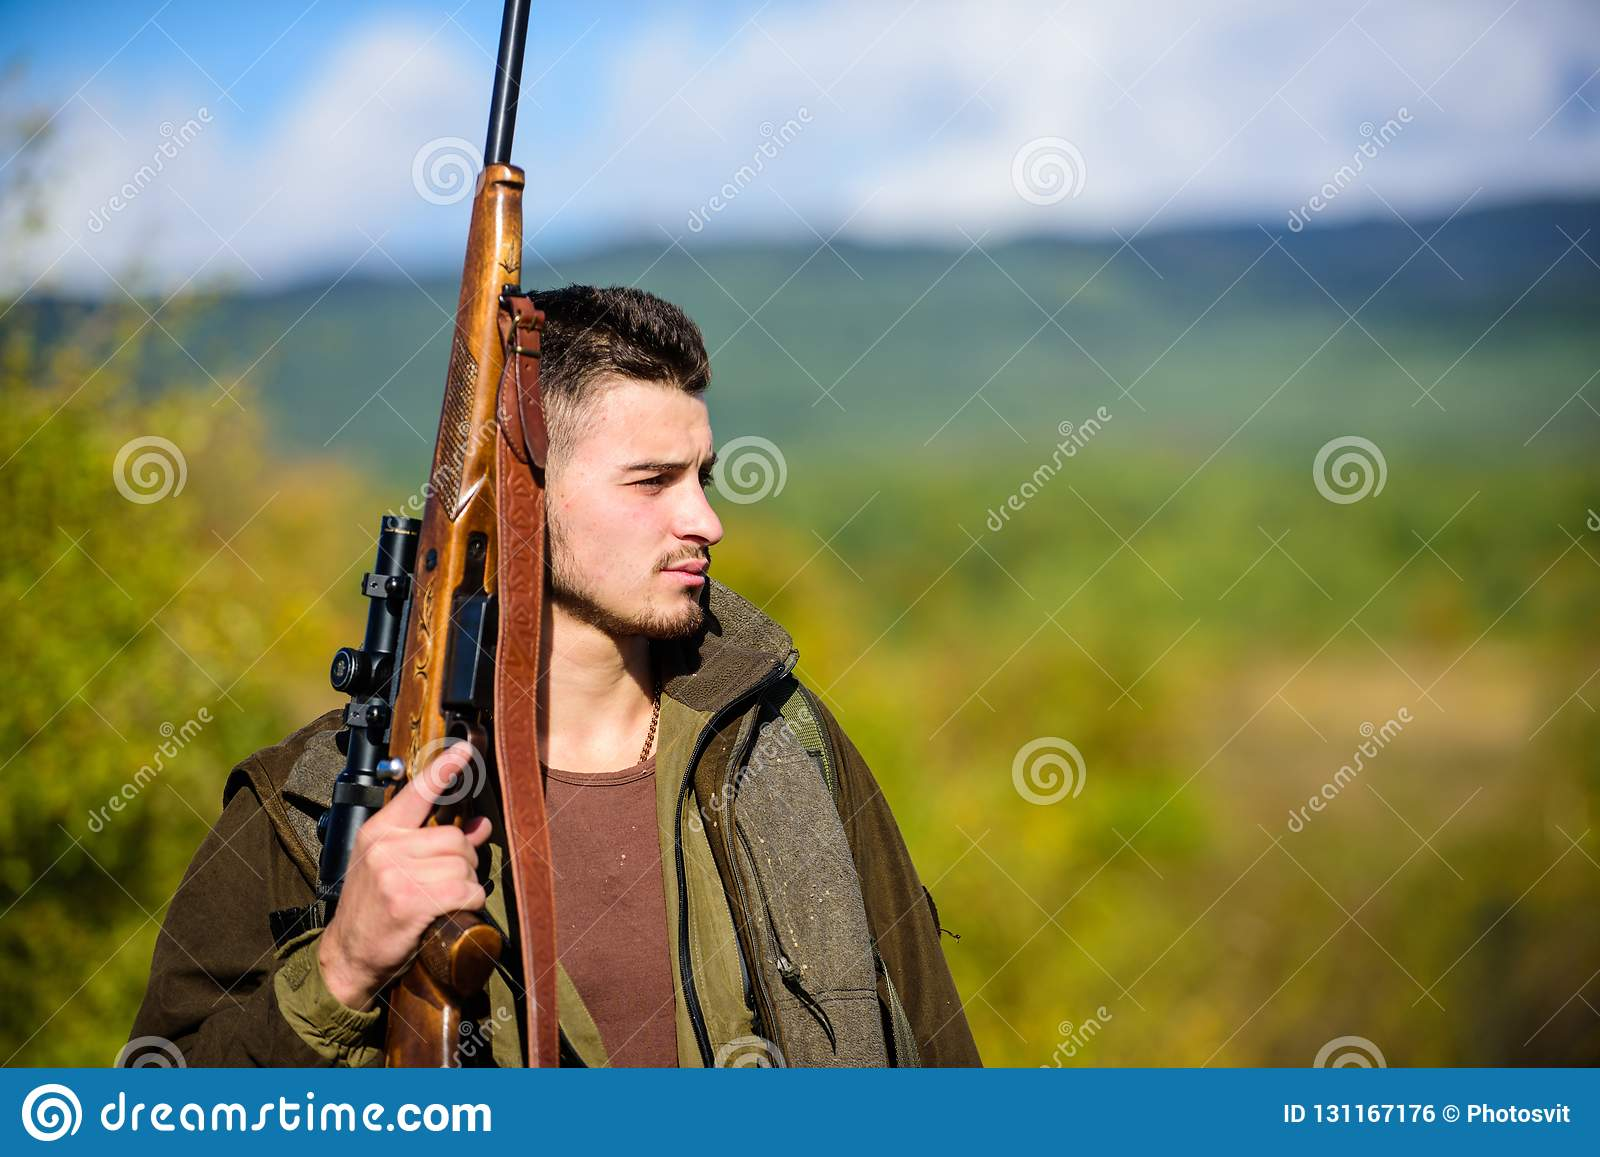 Experience and practice lends success hunting. Guy hunting nature environment. Masculine hobby activity. Hunting season